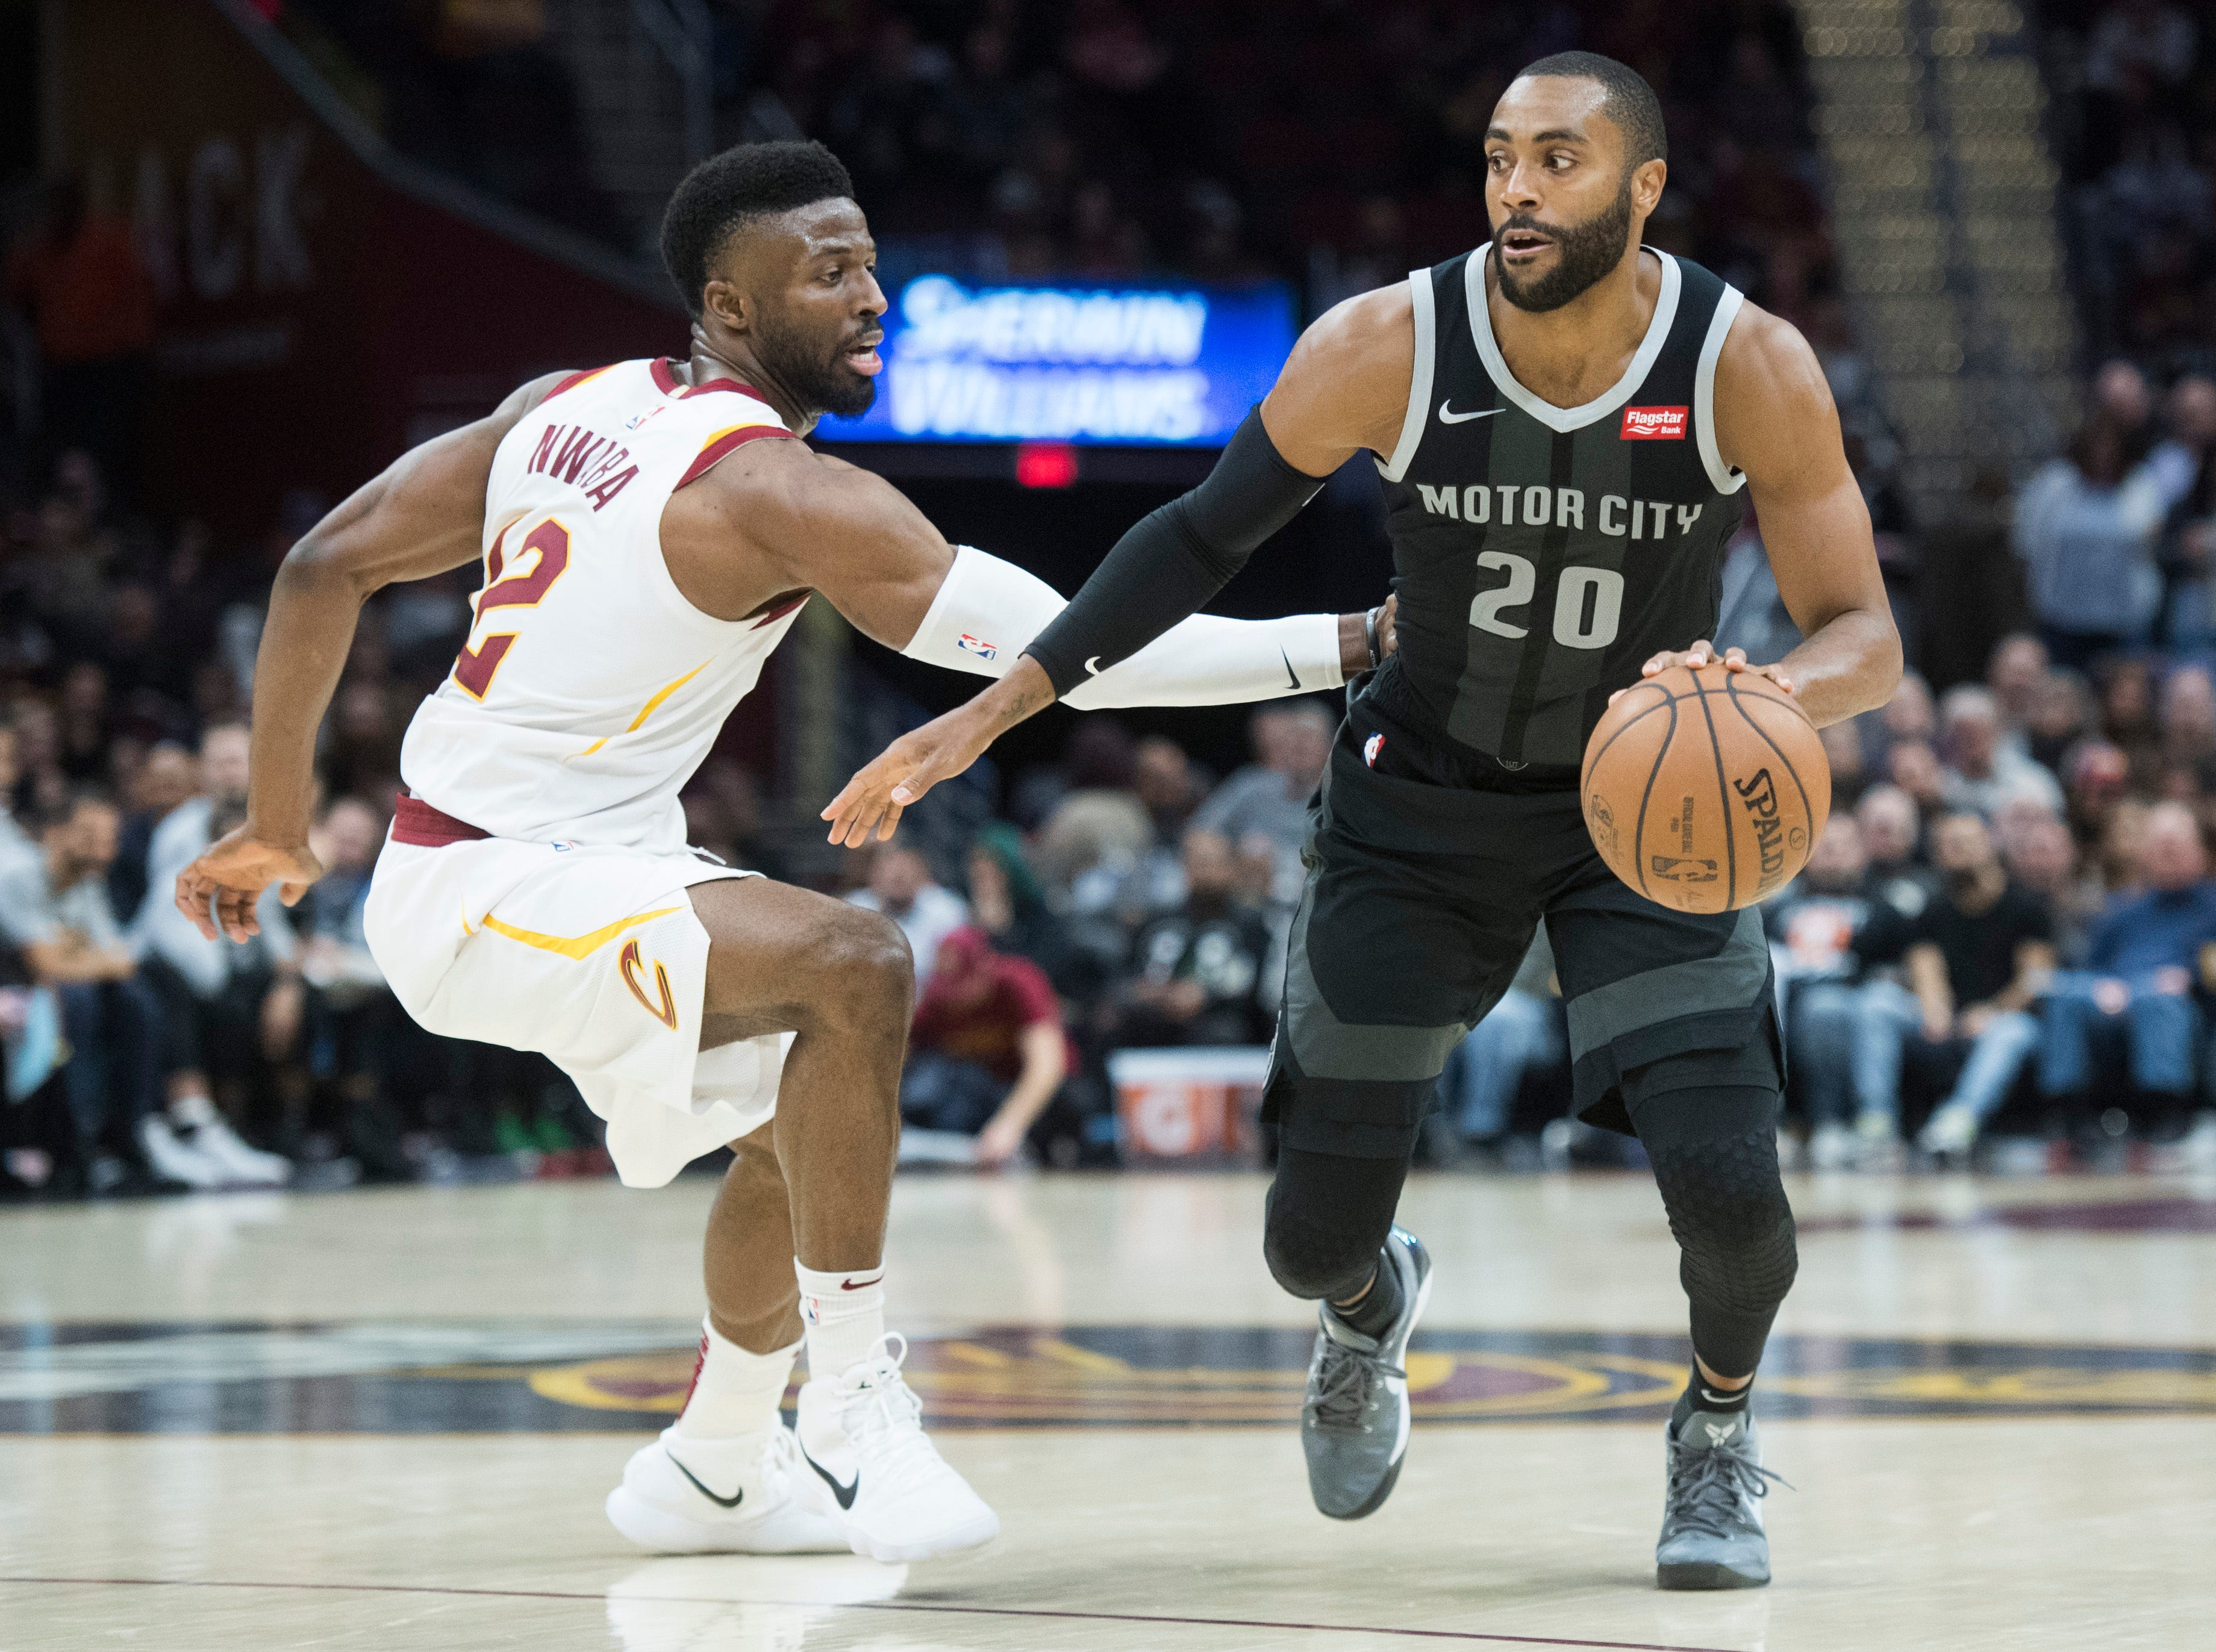 Detroit Pistons' guard Wayne Ellington drives to the basket against Cleveland Cavaliers' guard David Nwaba in the second half of an NBA basketball game.